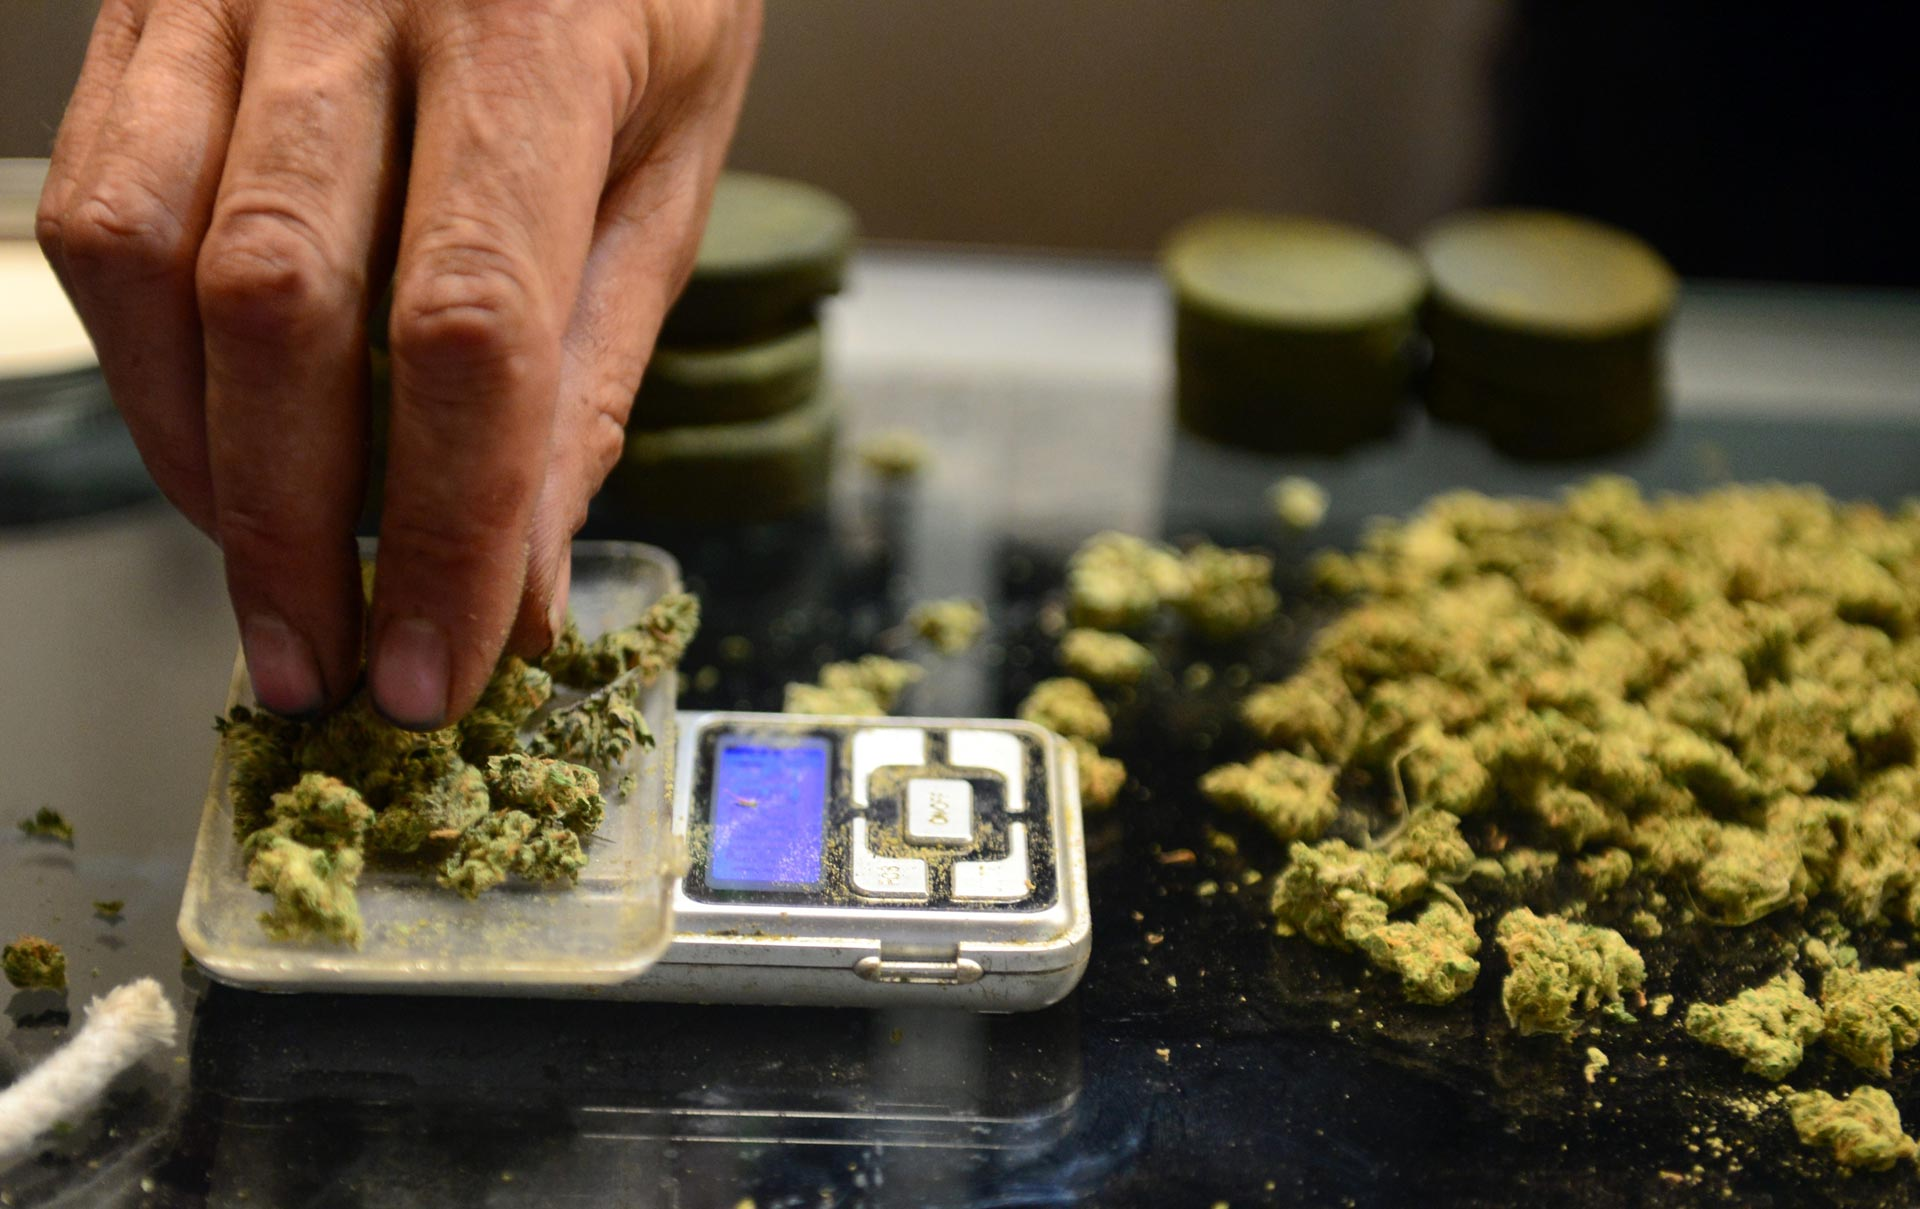 A vendor weighs buds for medical marijuana patients at Los Angeles' first-ever cannabis farmer's market on July 4, 2014.